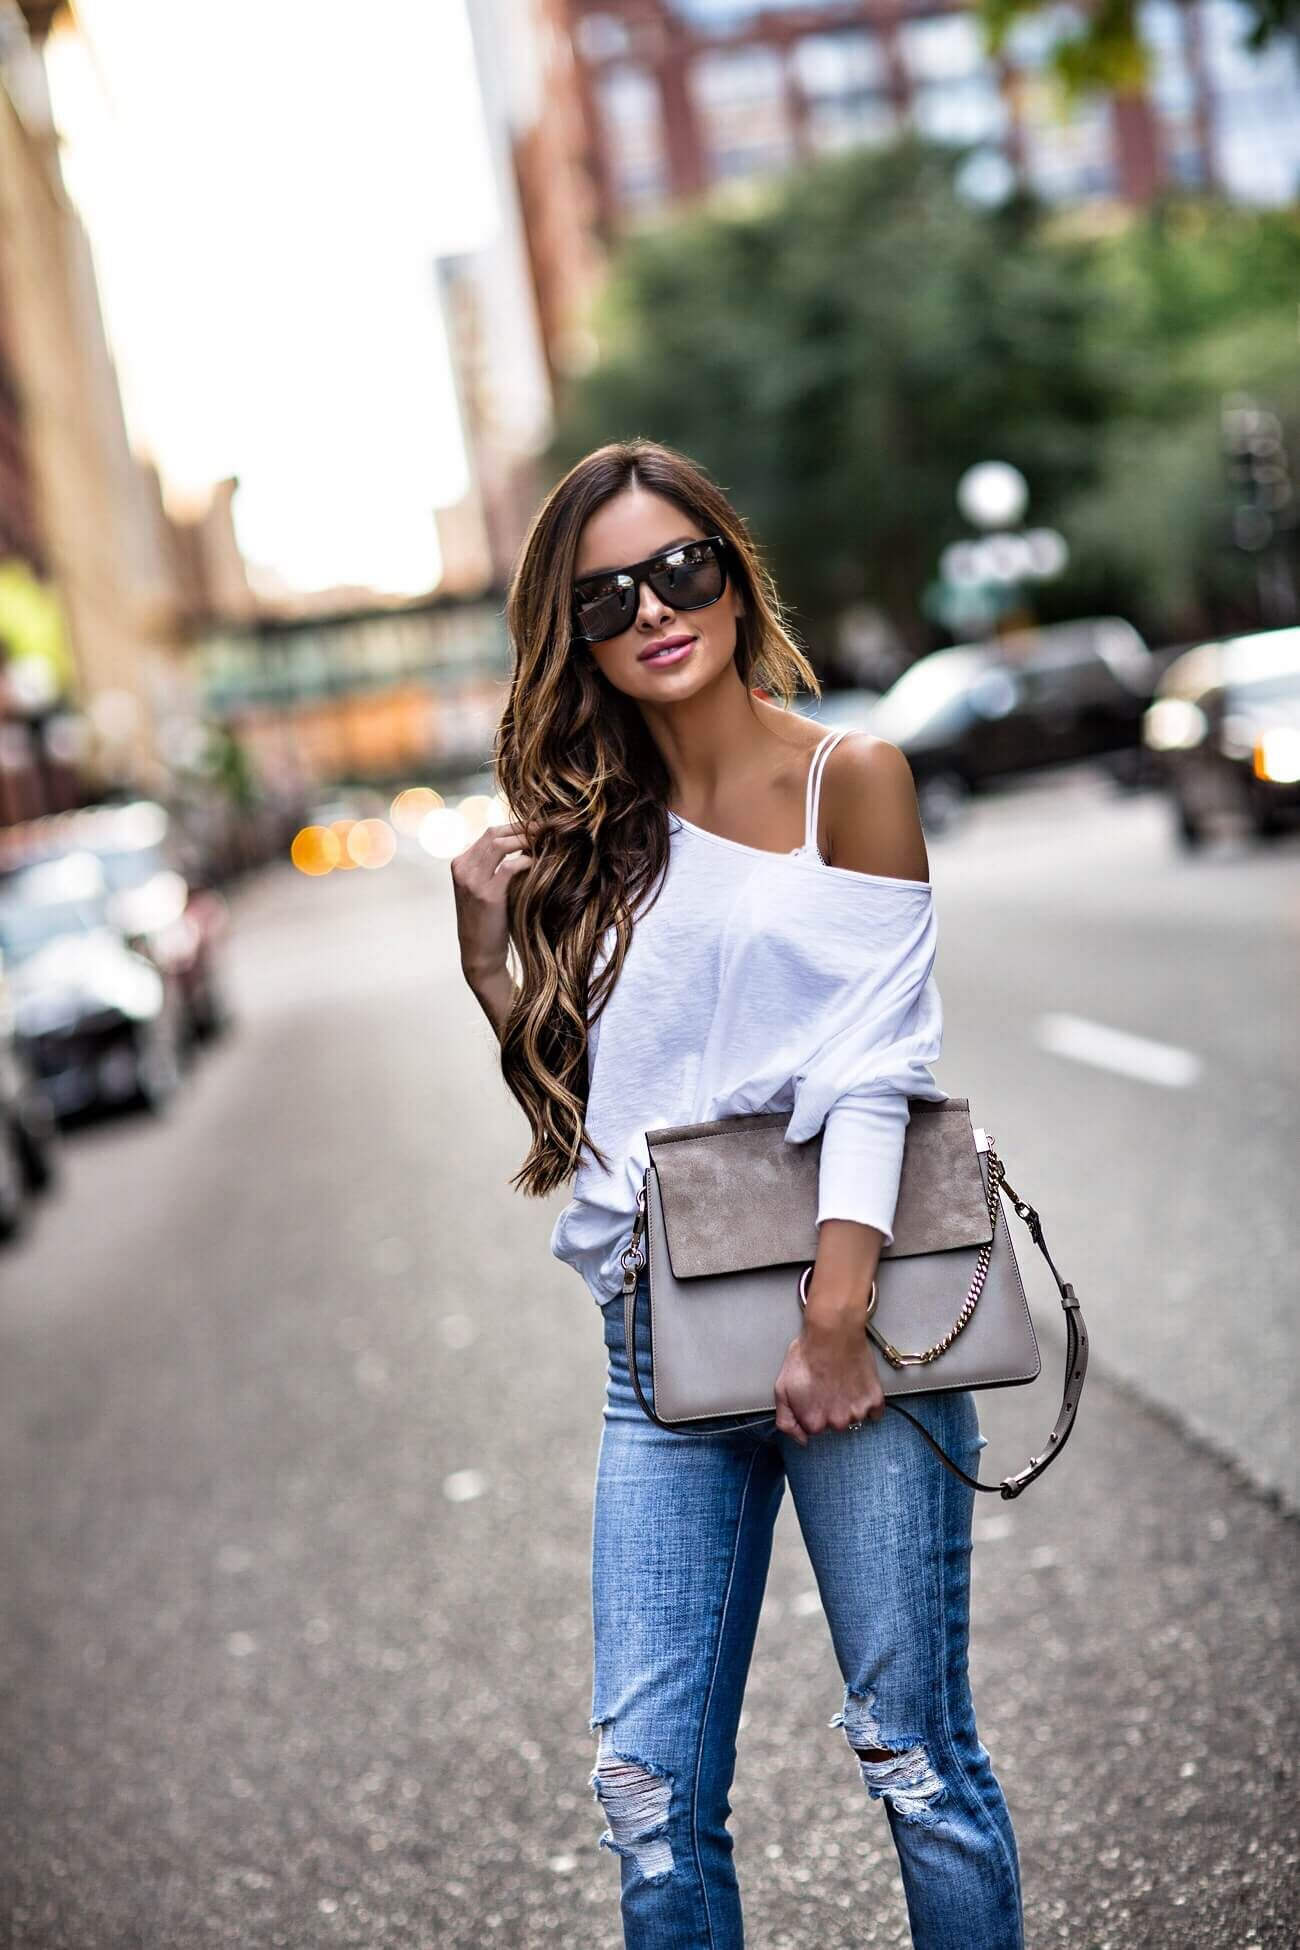 544511d98653e0 fashion blogger mia mia mine wearing a chloe faye bag and a white off the  shoulder top